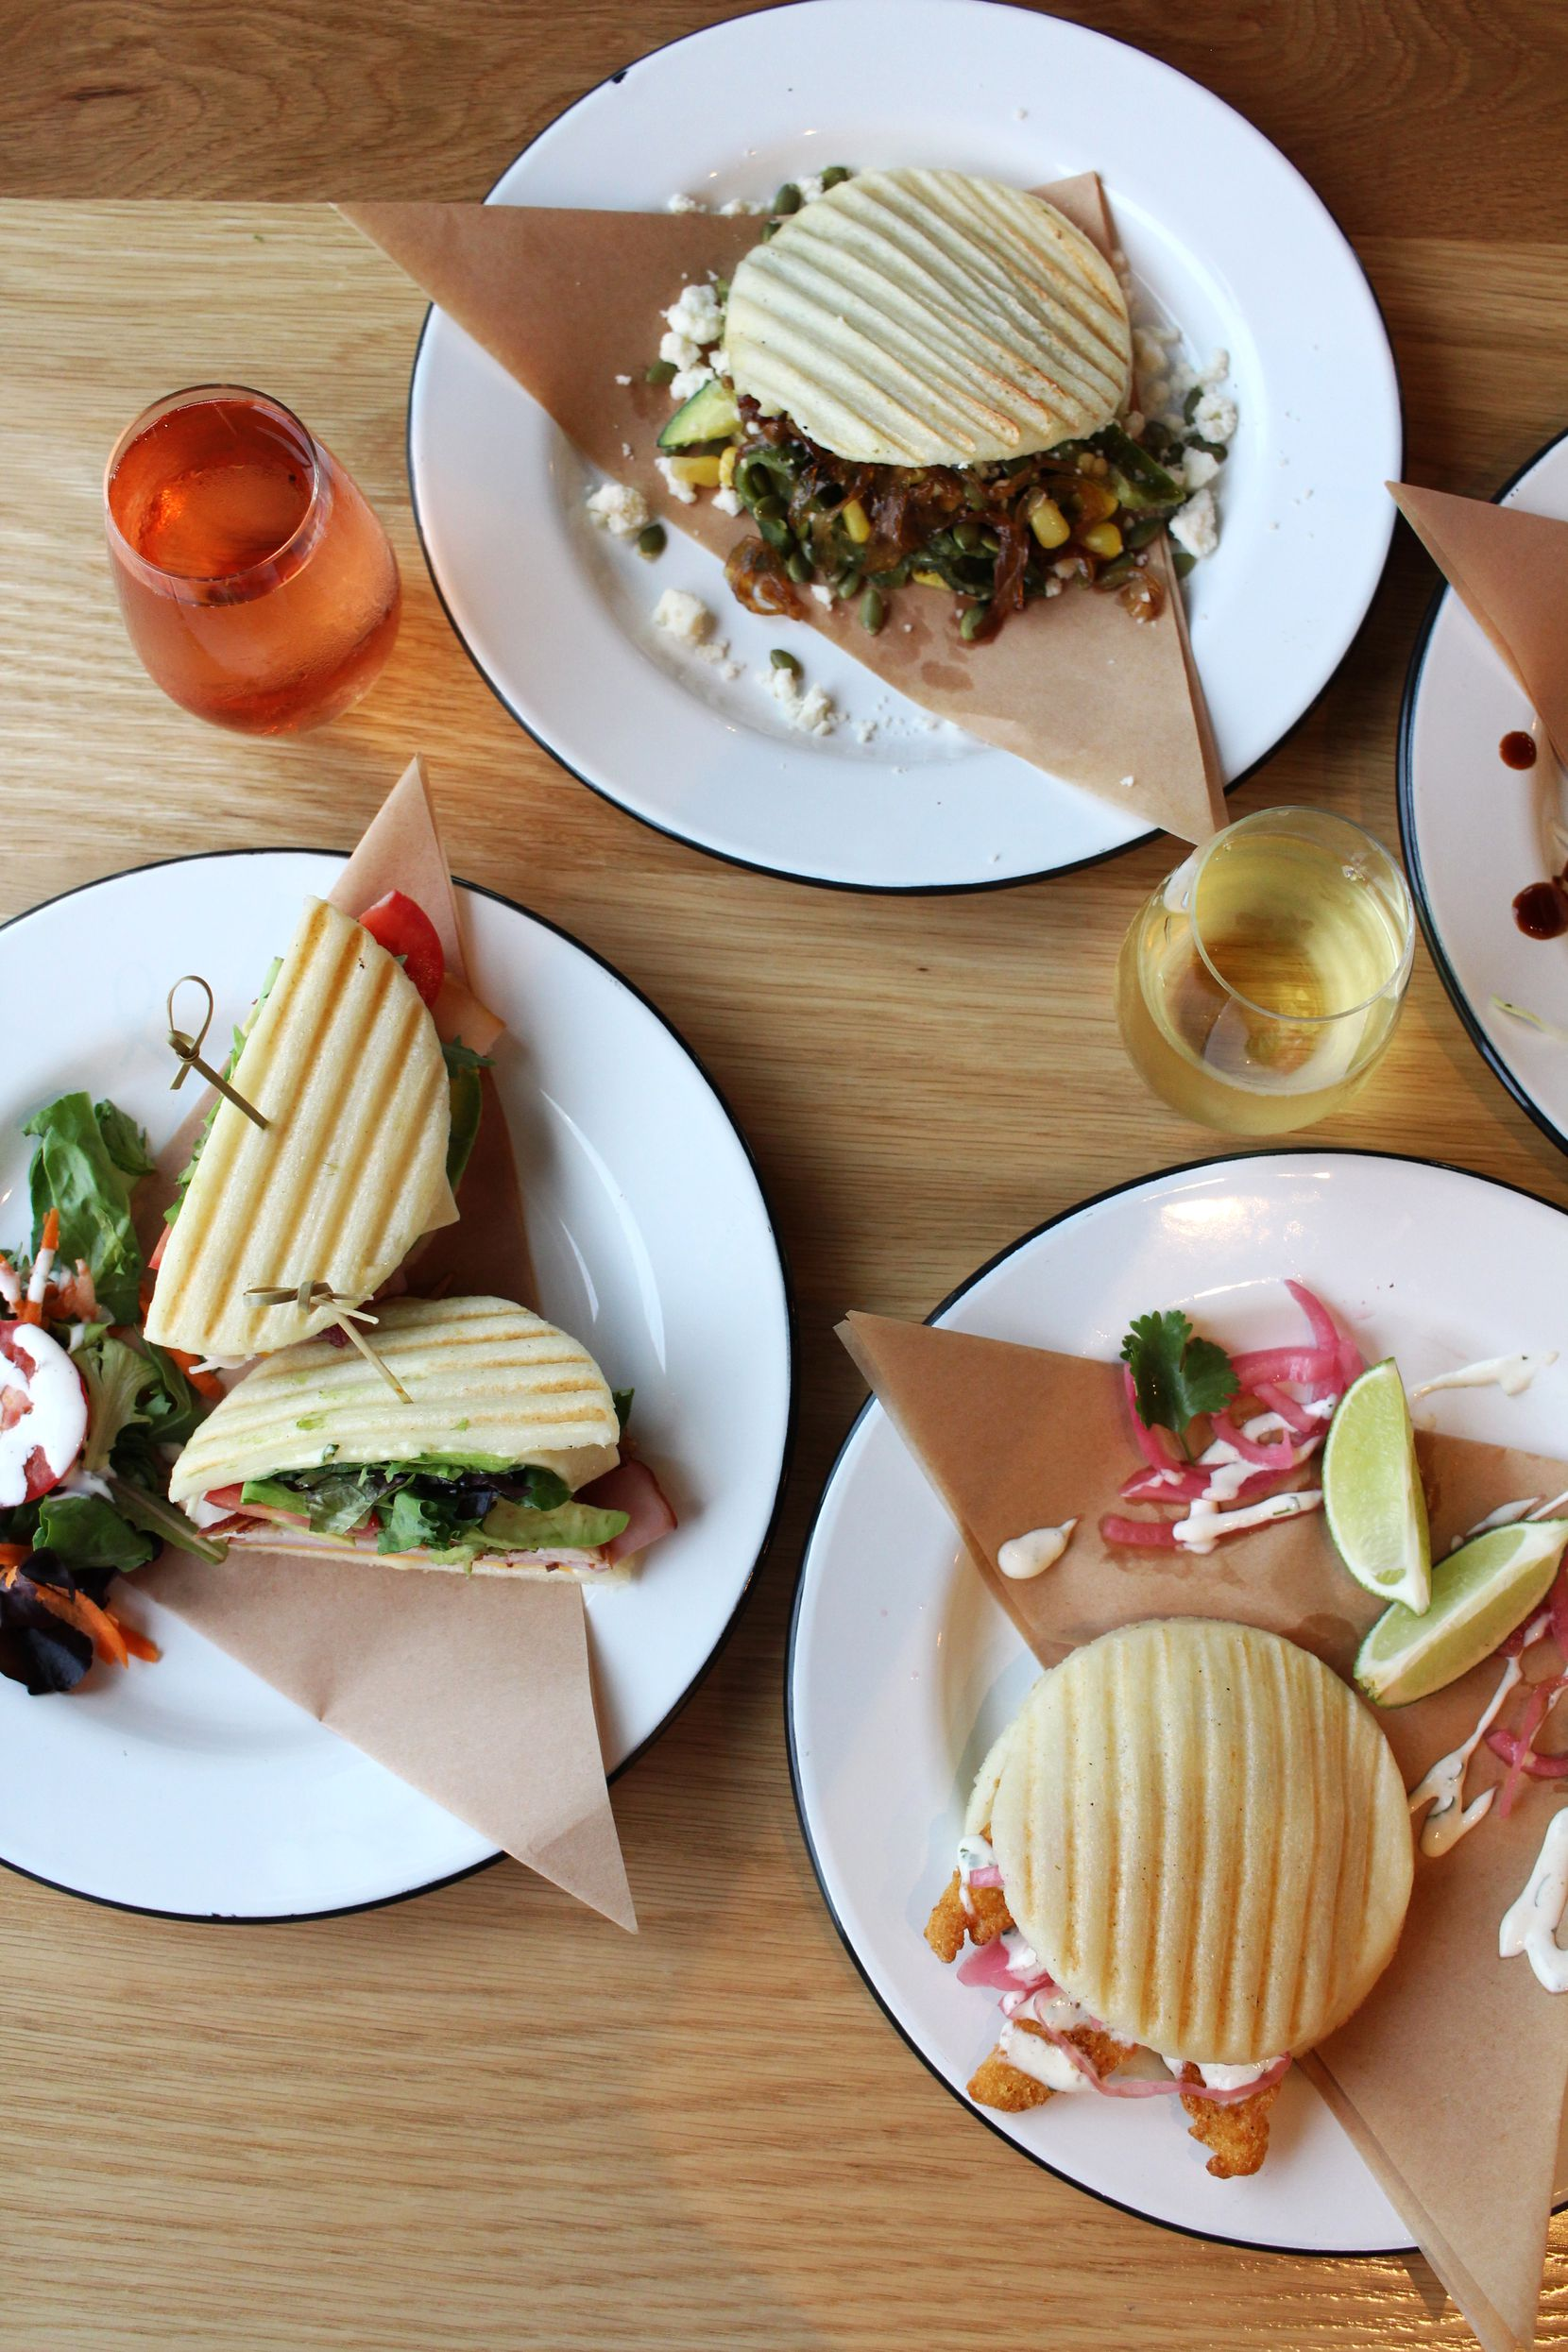 Arepa TX serves arepas and tacos in the coming-soon Harvest Hall in Grapevine.